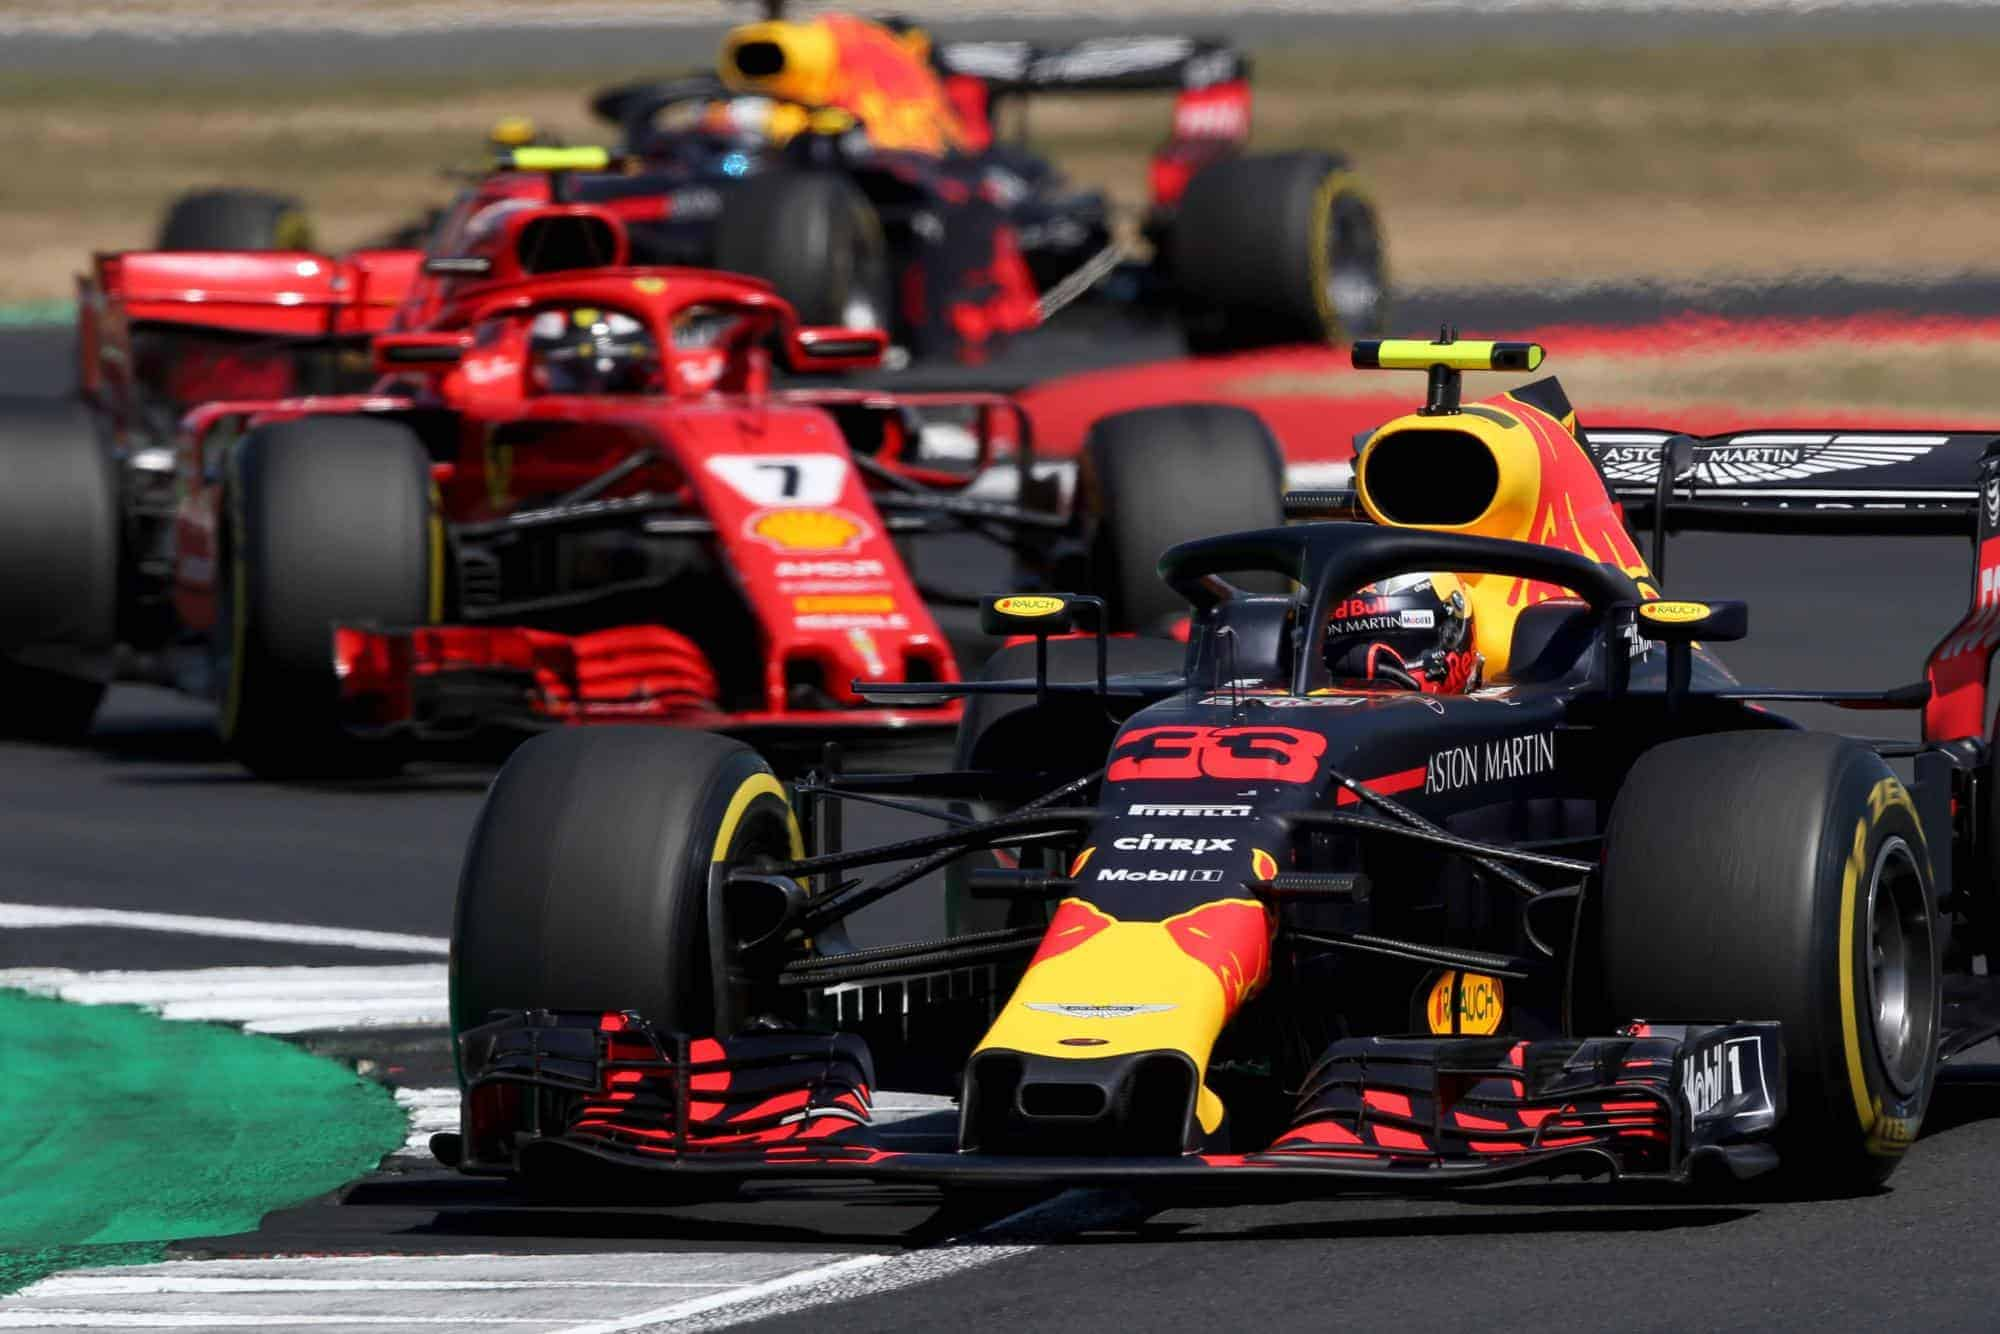 Verstappen leads Raikkonen Ricciardo British GP F1 2018 Photo Red Bull